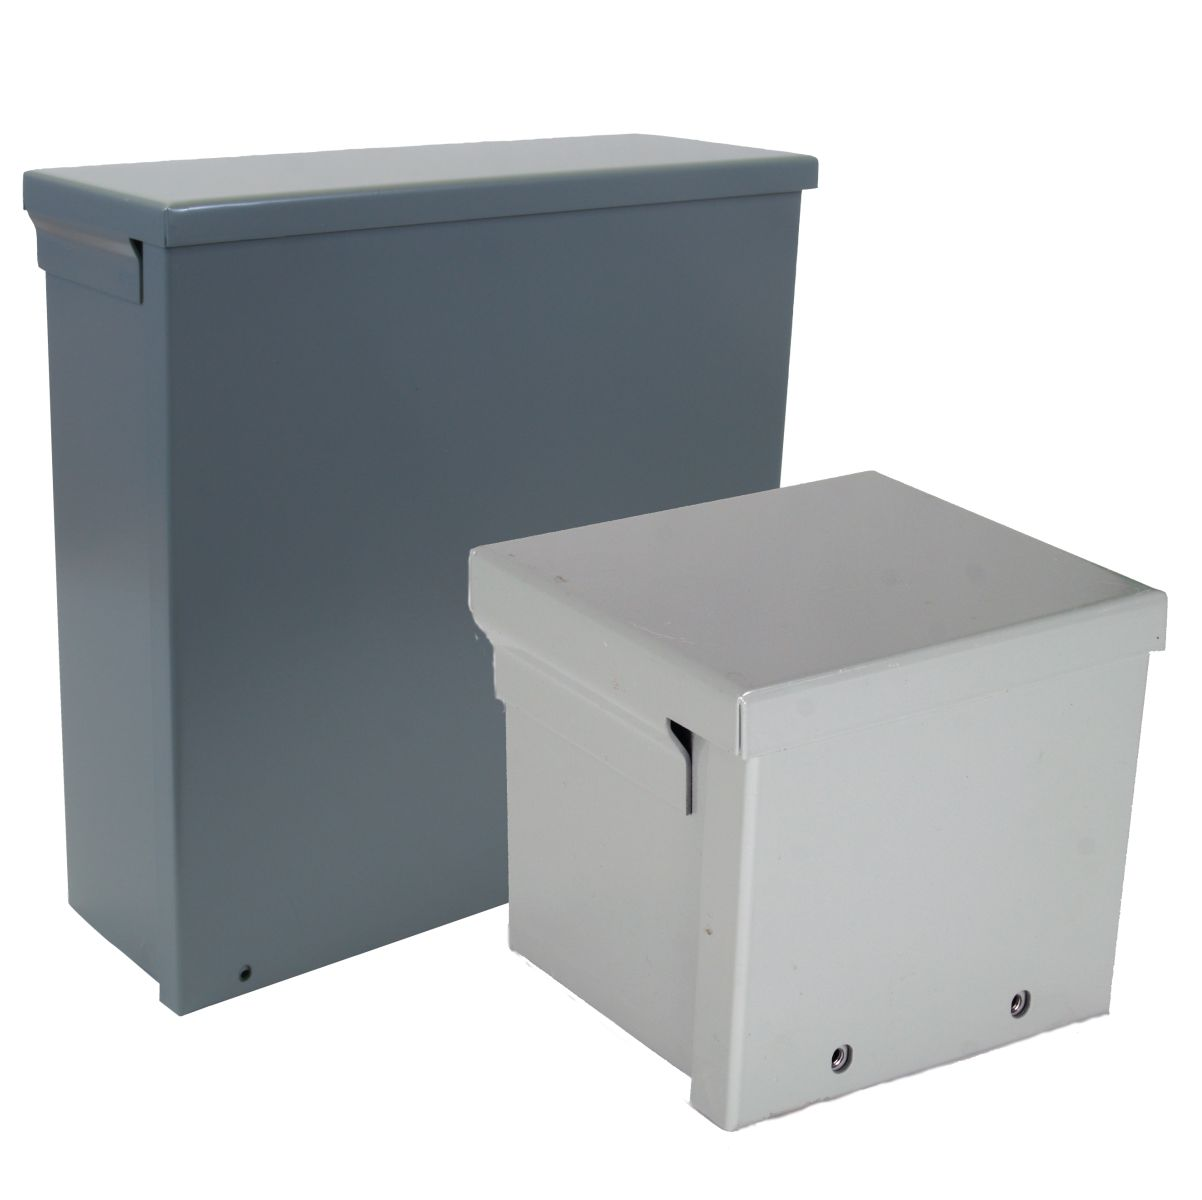 NEMA 3R Screw Cover Enclosure